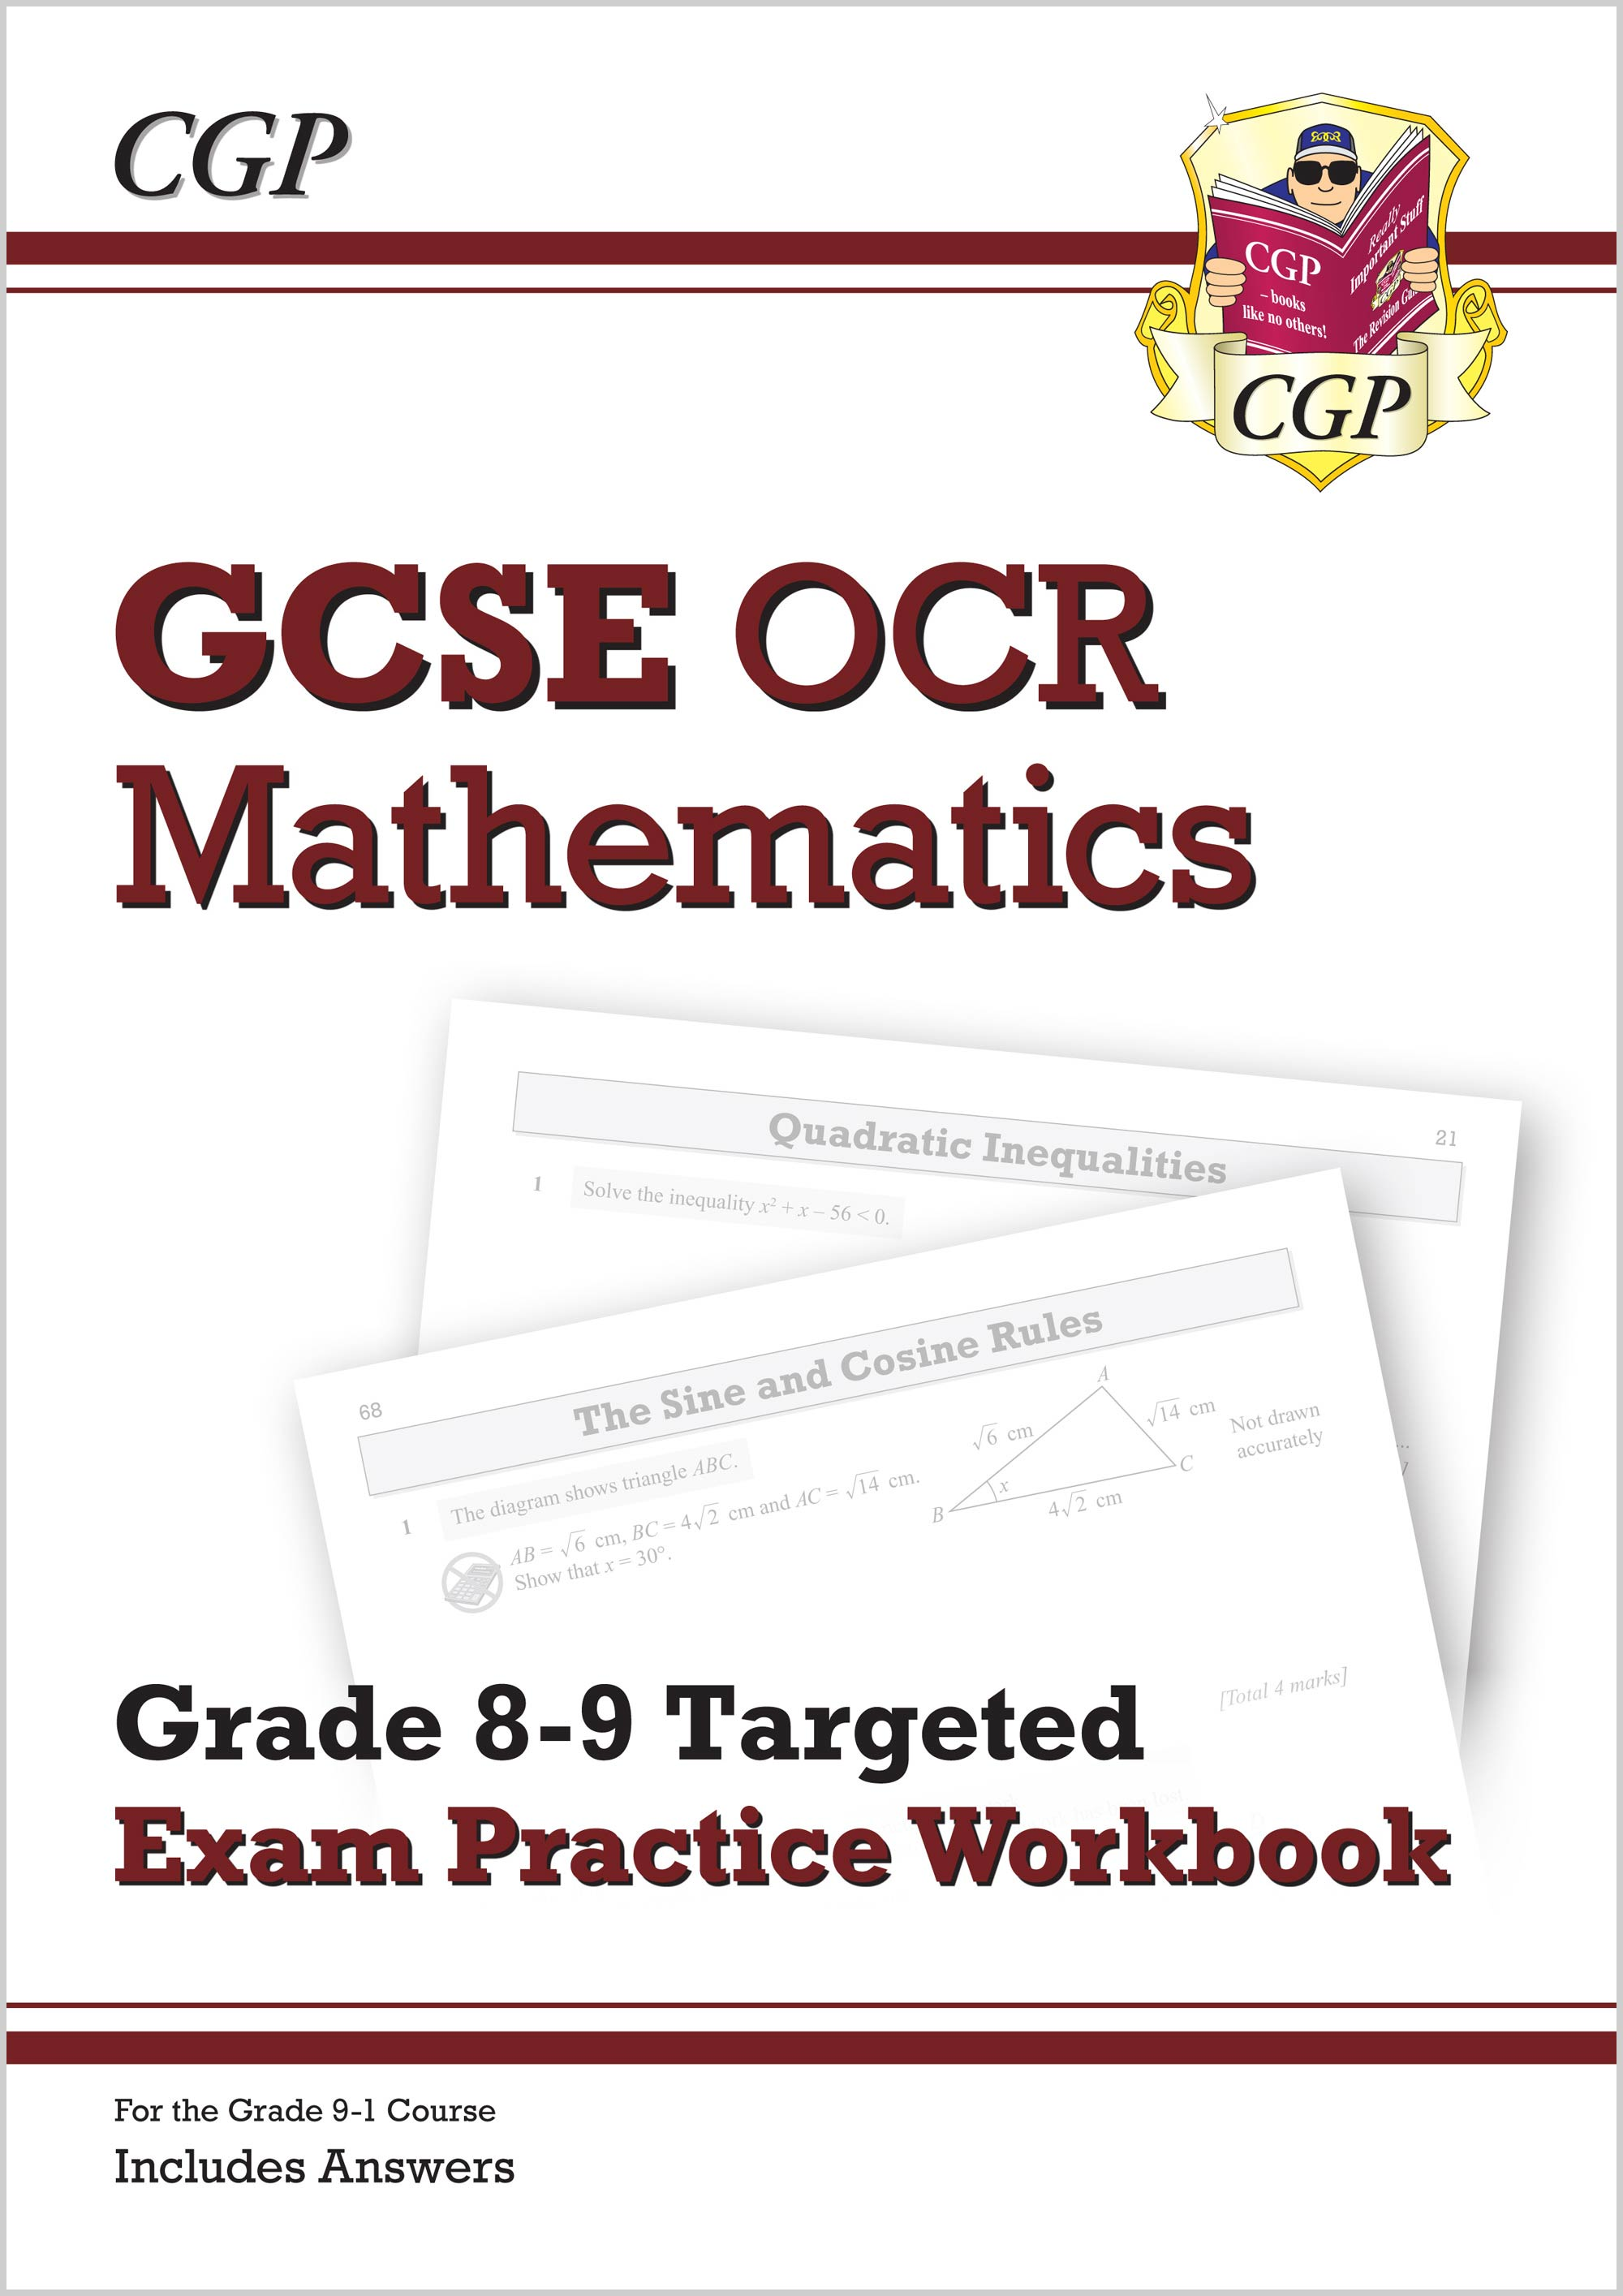 MC9Q42 - New GCSE Maths OCR Grade 8-9 Targeted Exam Practice Workbook (includes Answers)